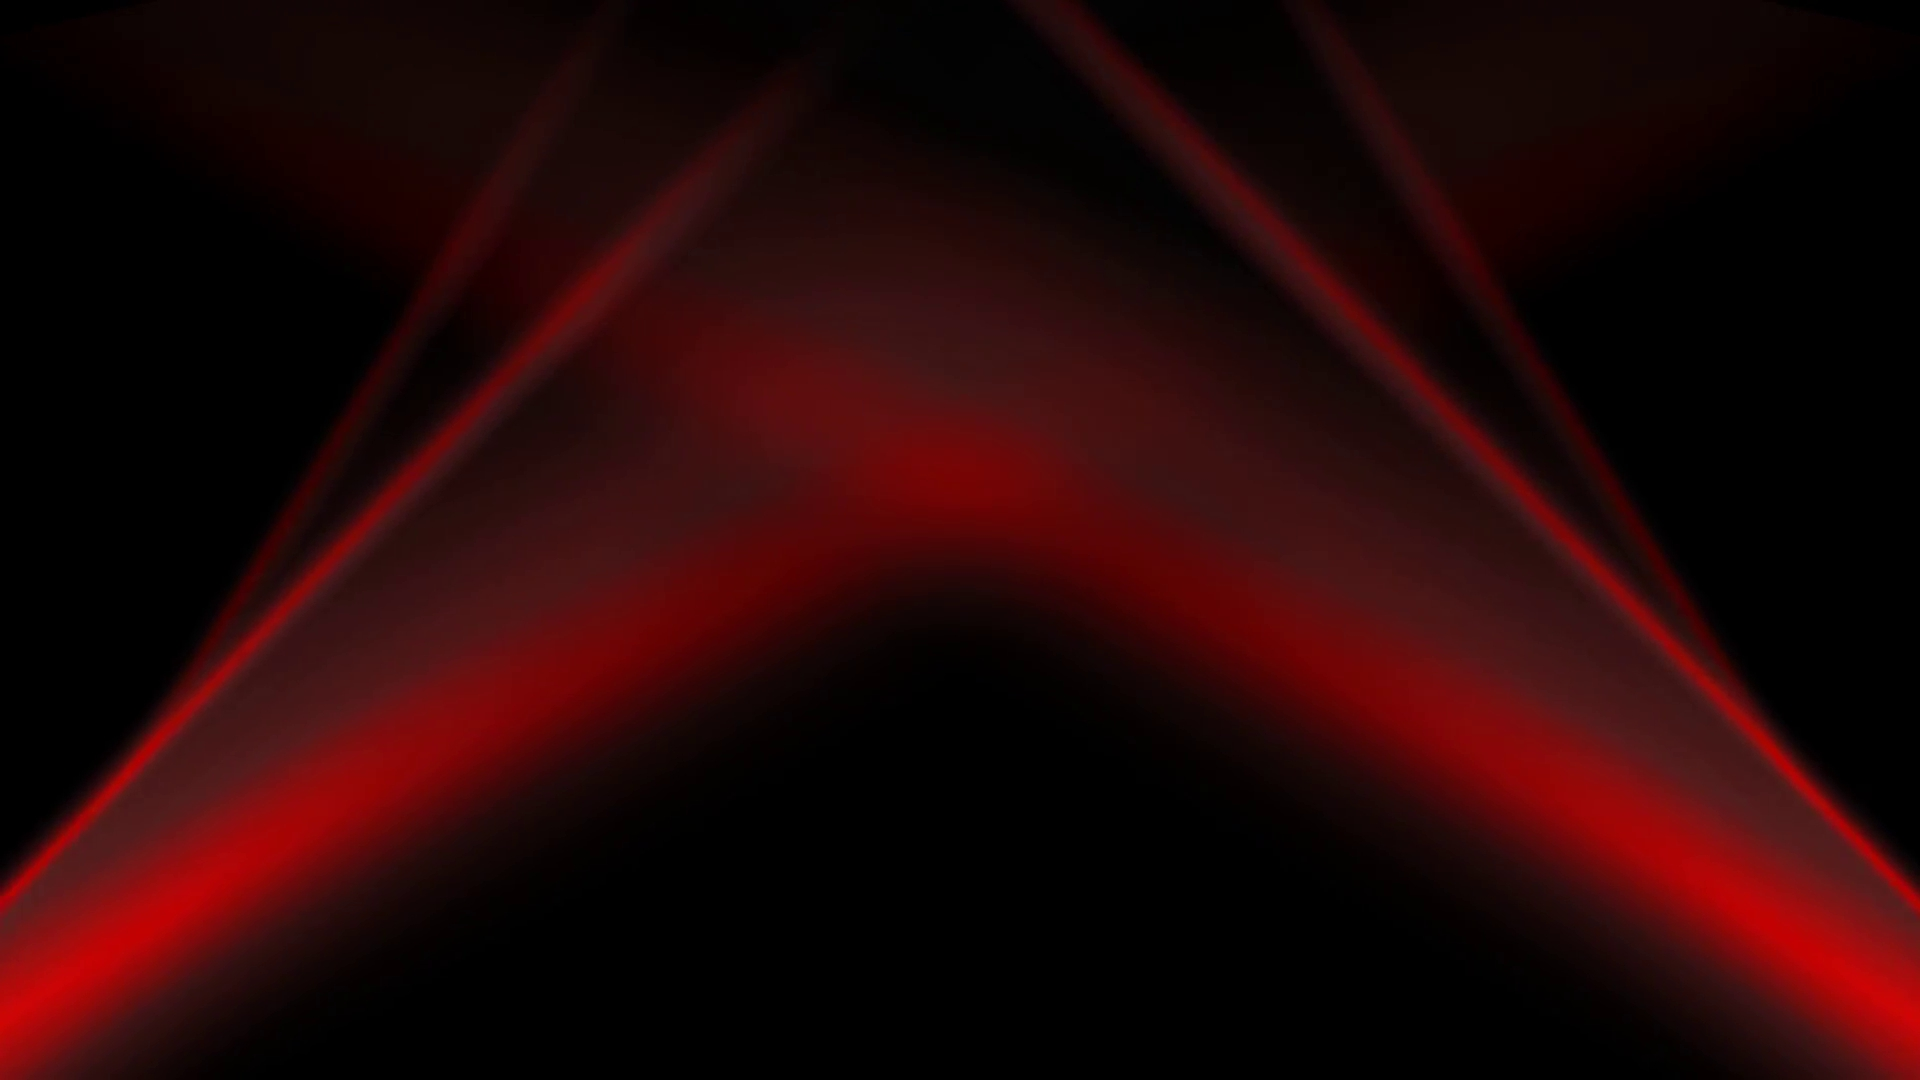 10 New Red And Black Background Images FULL HD 1920×1080 For PC Background